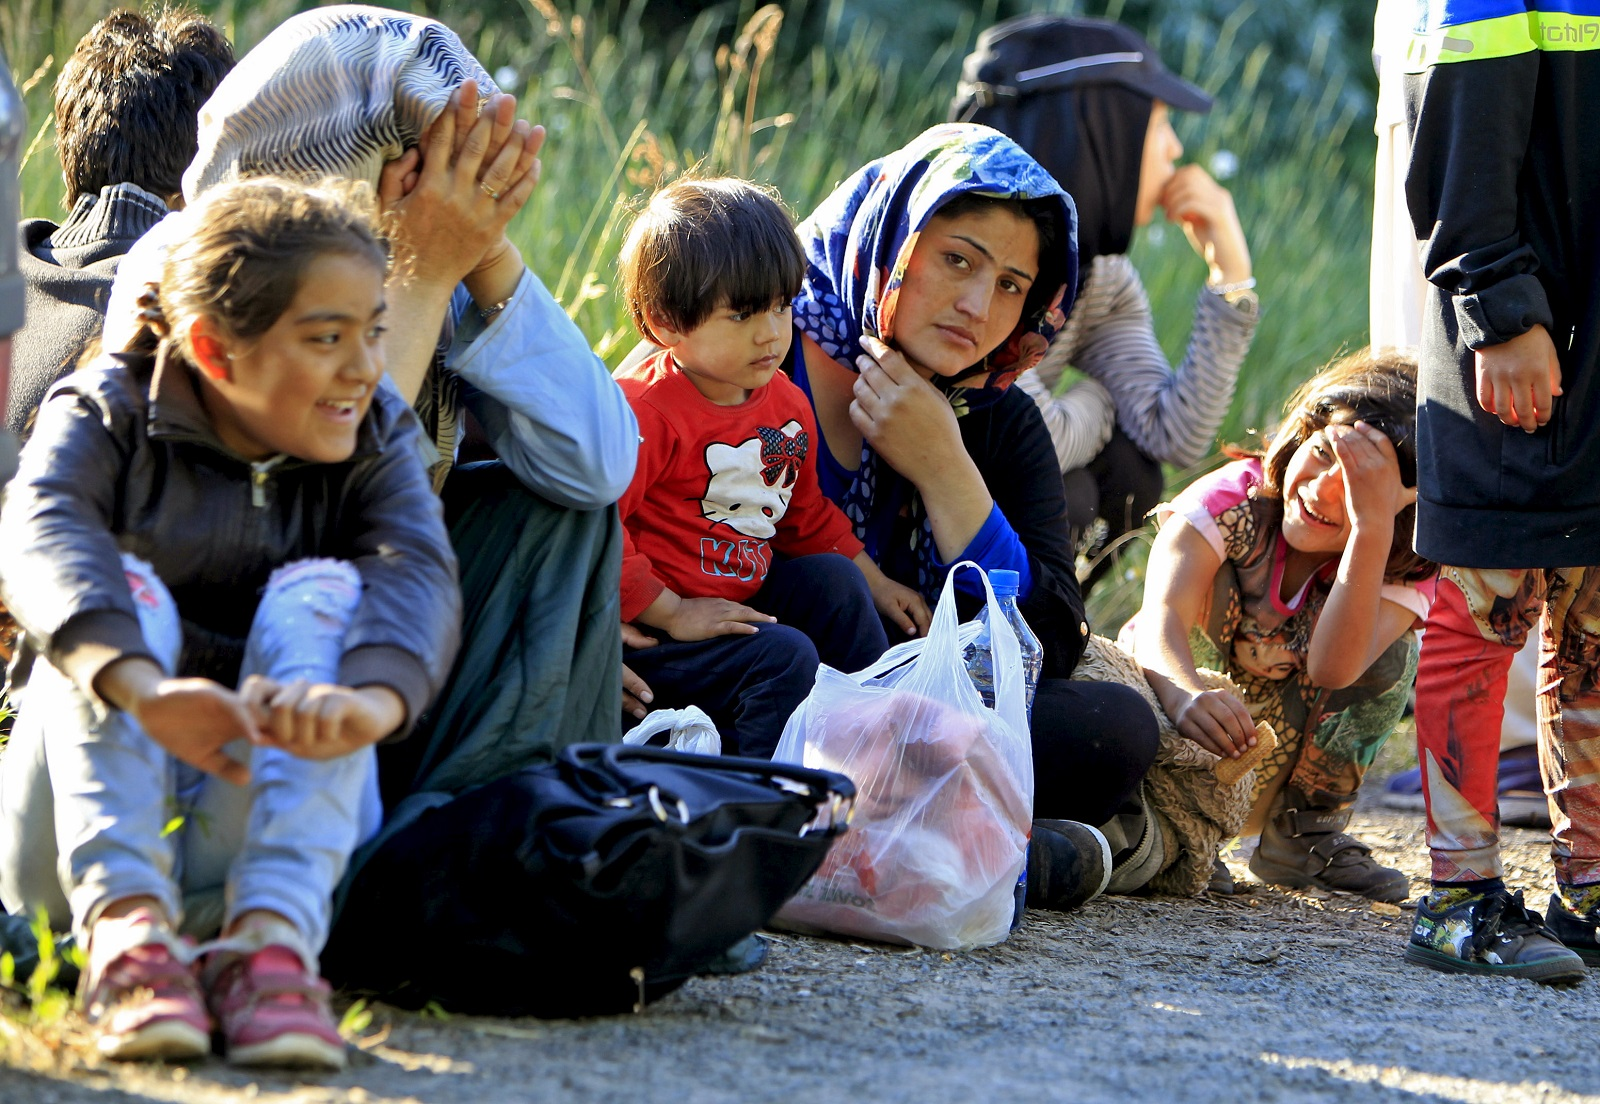 Afghans cross into Hungary from Serbia